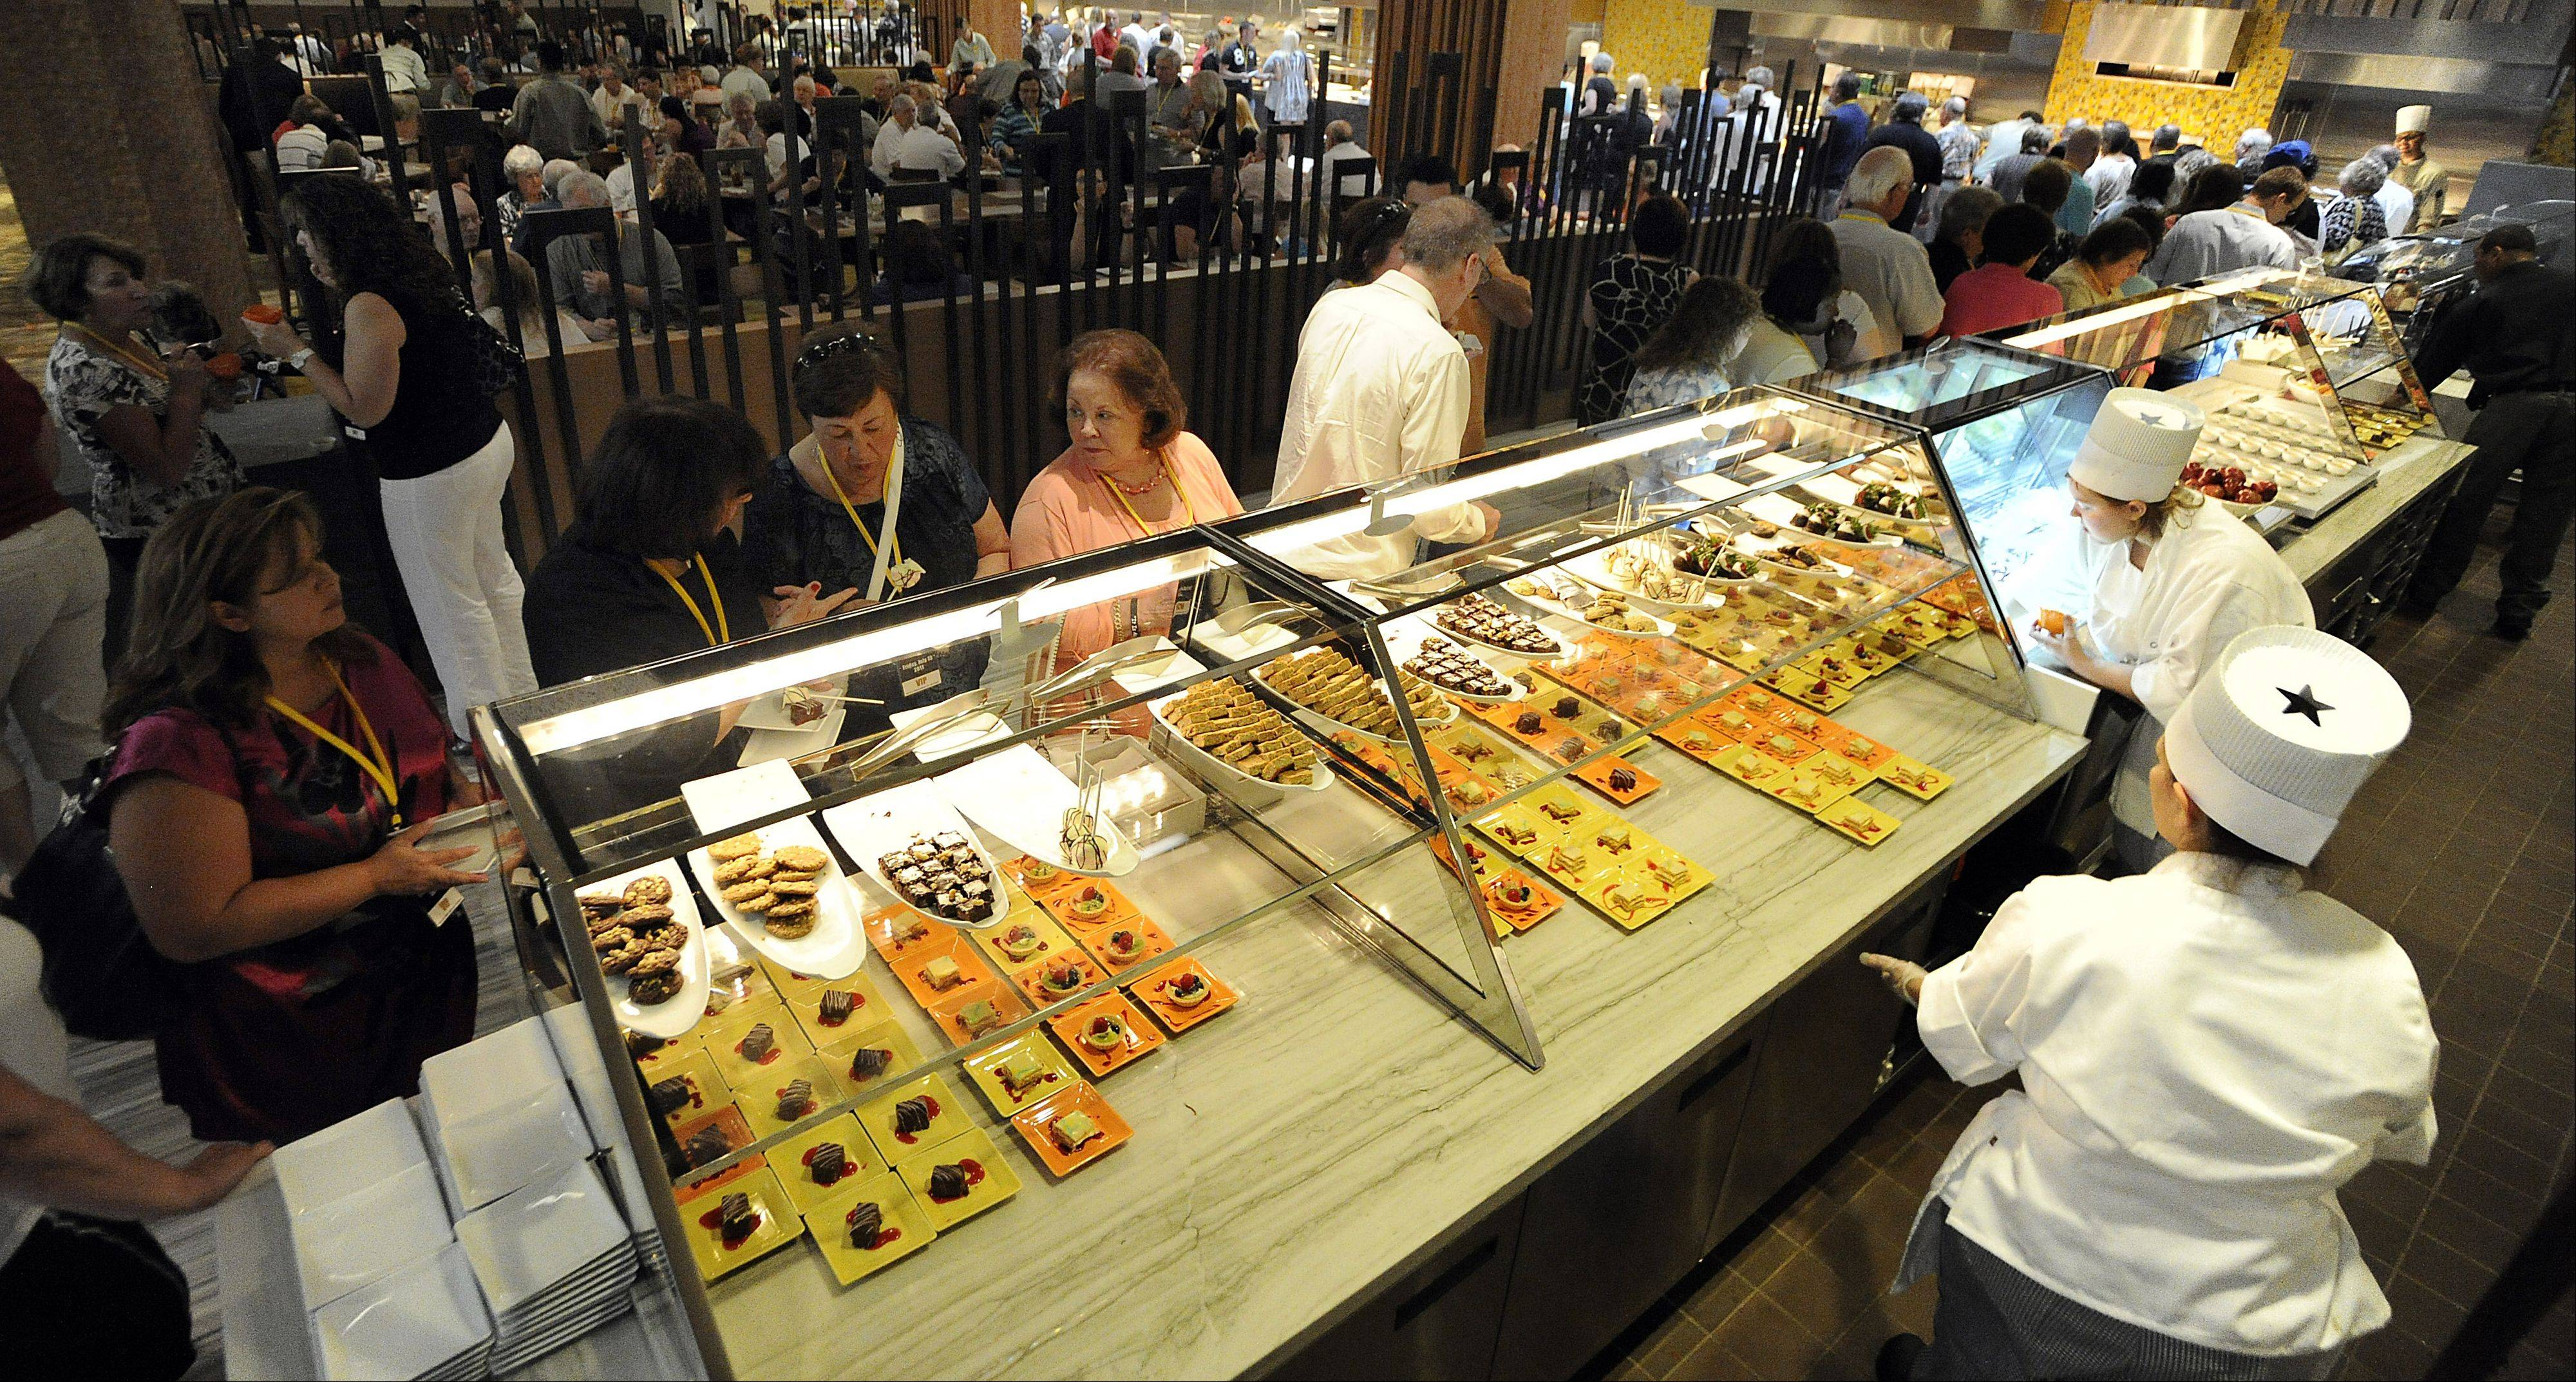 images the rivers casino opens for des plaines residents rh dailyherald com rivers casino buffet lunch menu river casino buffet chicago